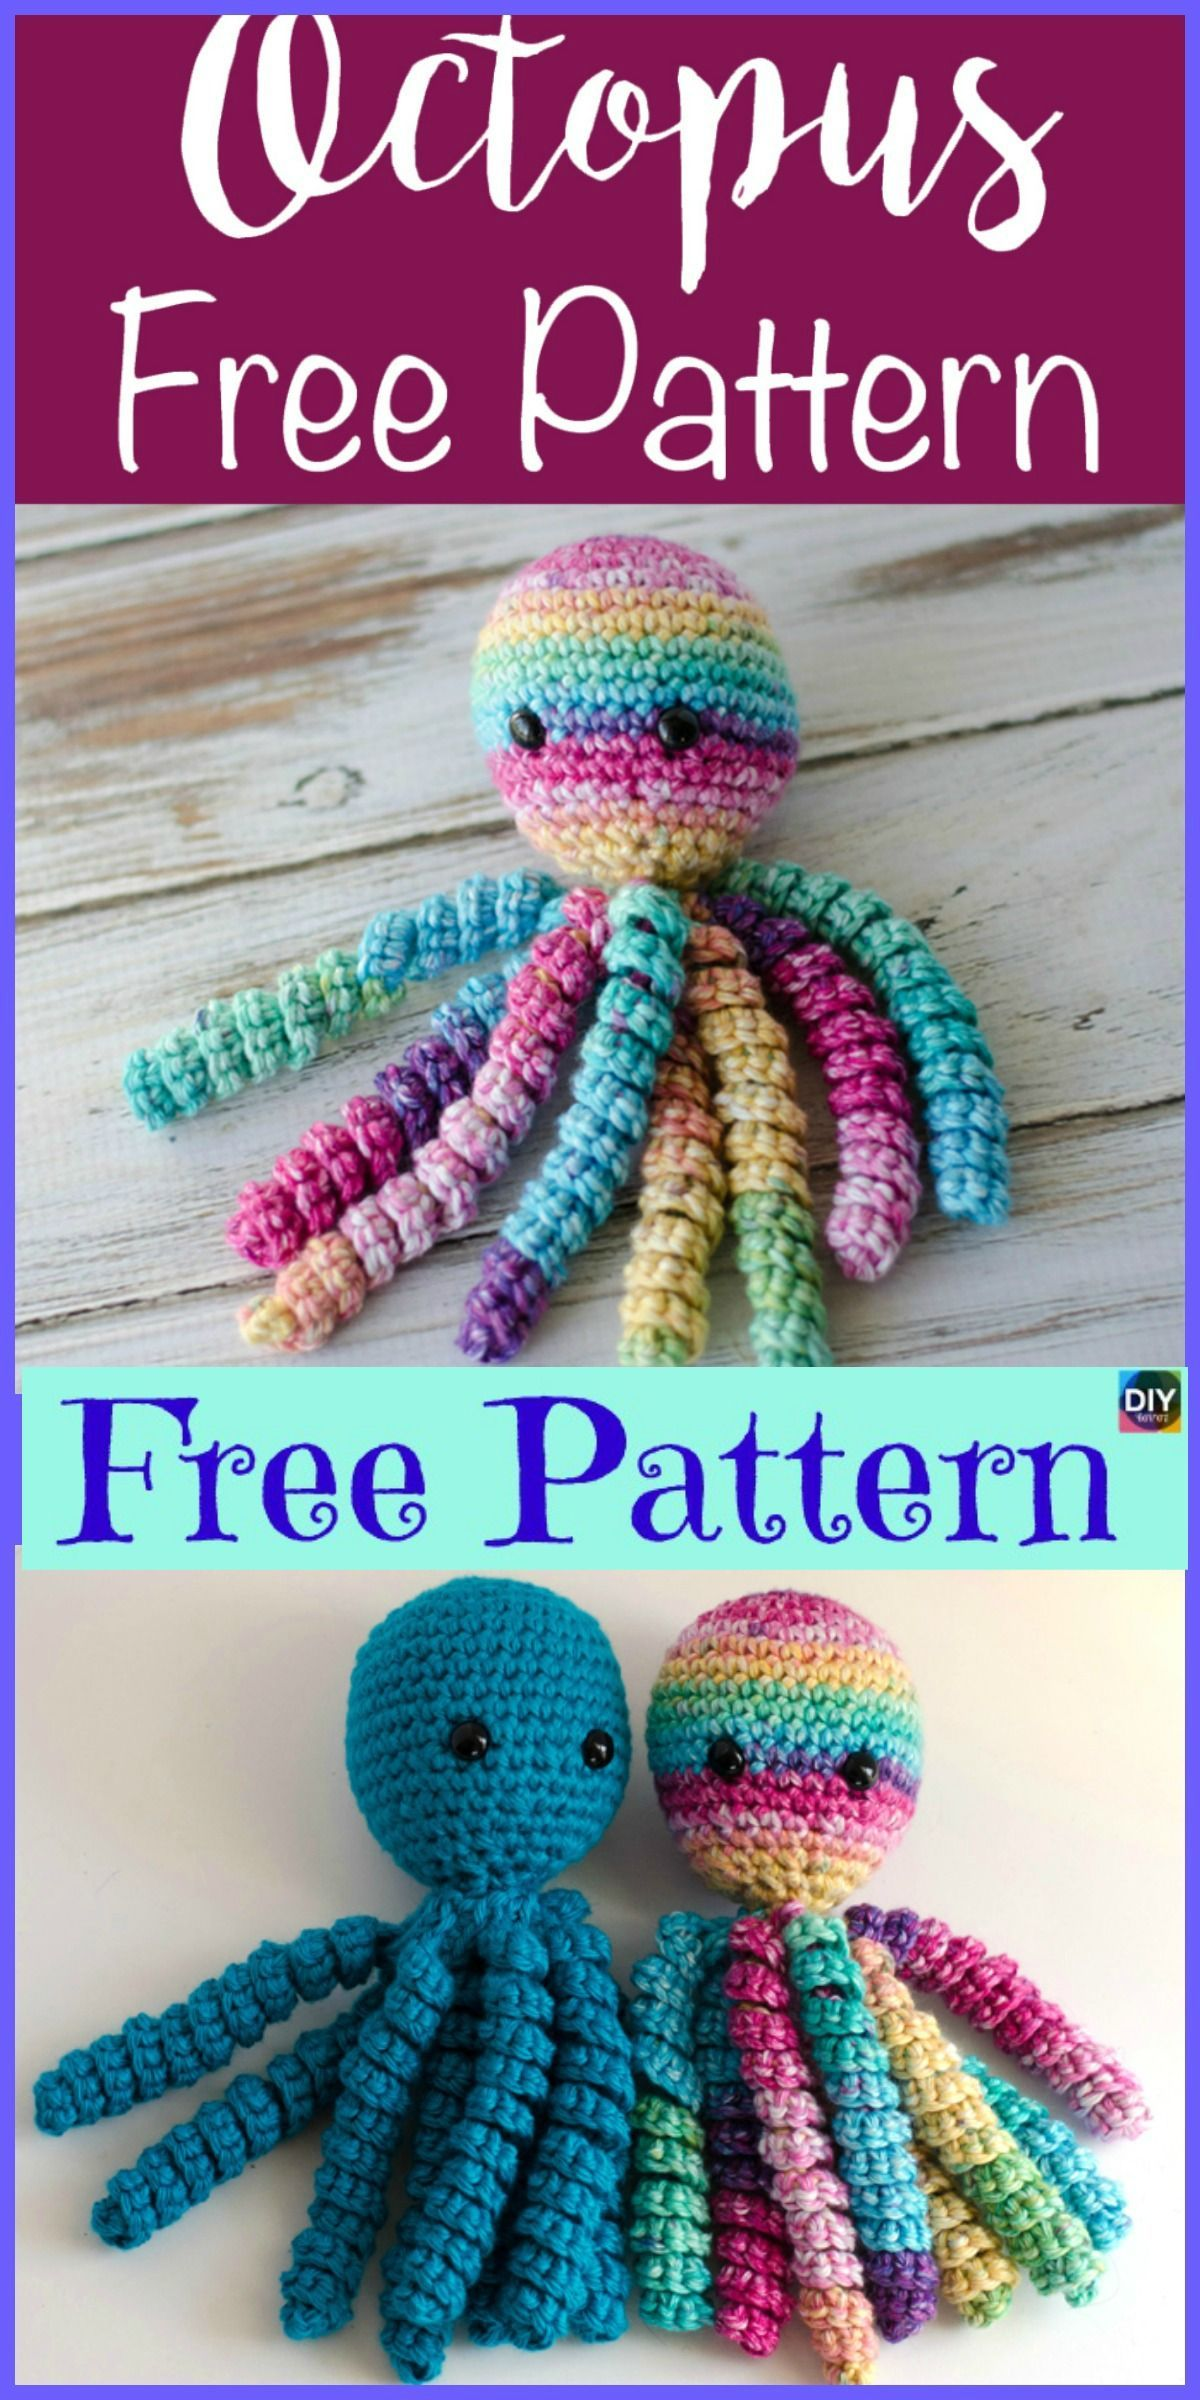 Best 11 Adorable Crochet Octopus Amigurumi - Free Pattern #freecrochetpatterns #octopus #amigurumi #gift #crochetoctopus